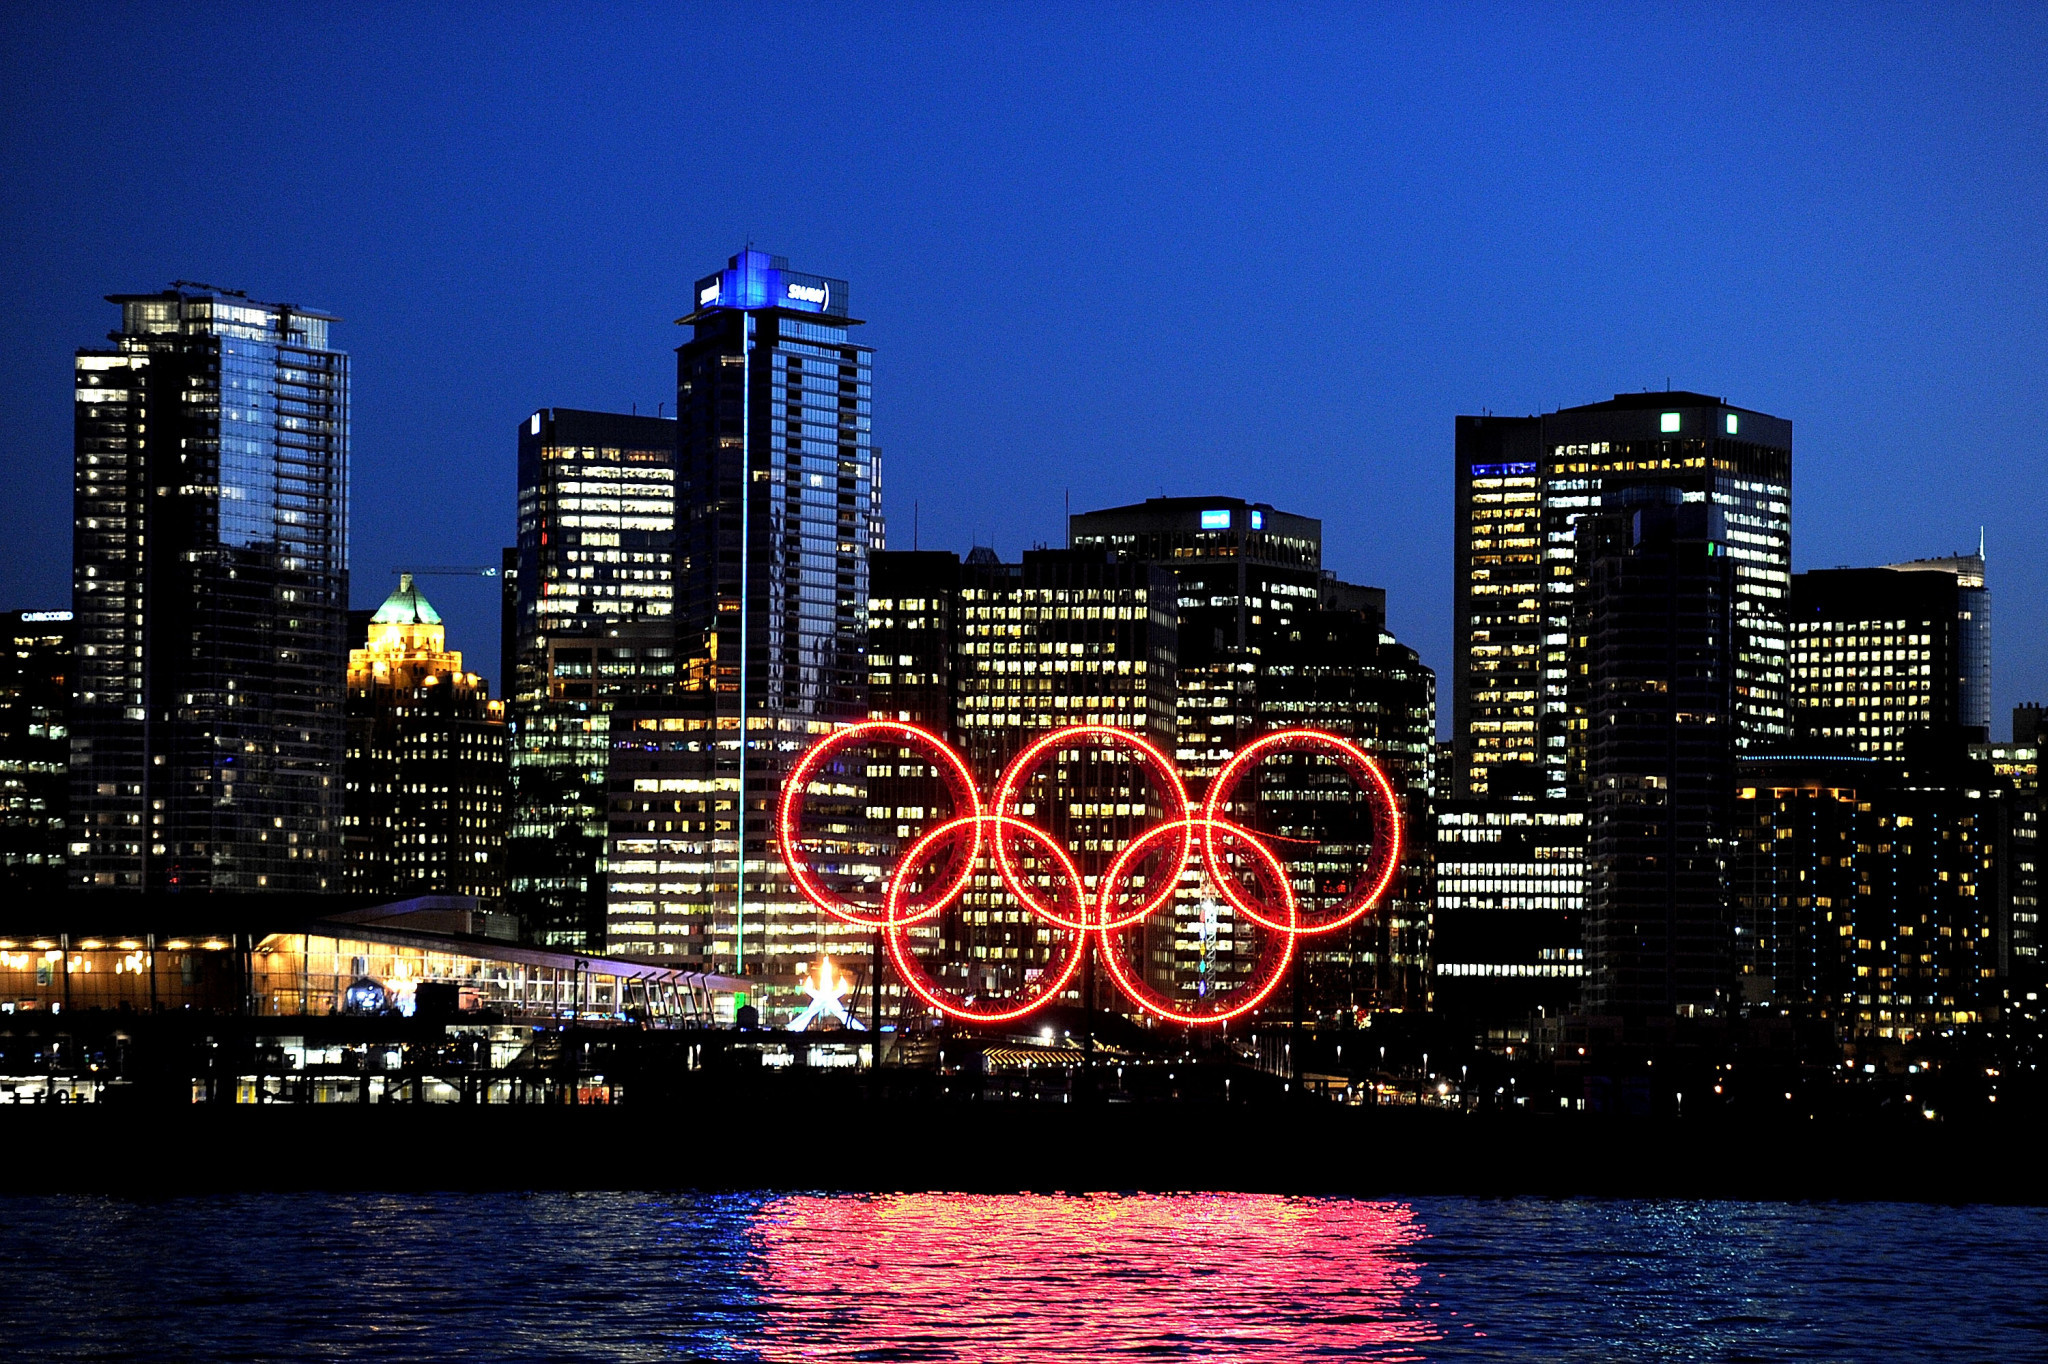 Public support for 2030 Winter Olympics in Vancouver falling, survey says